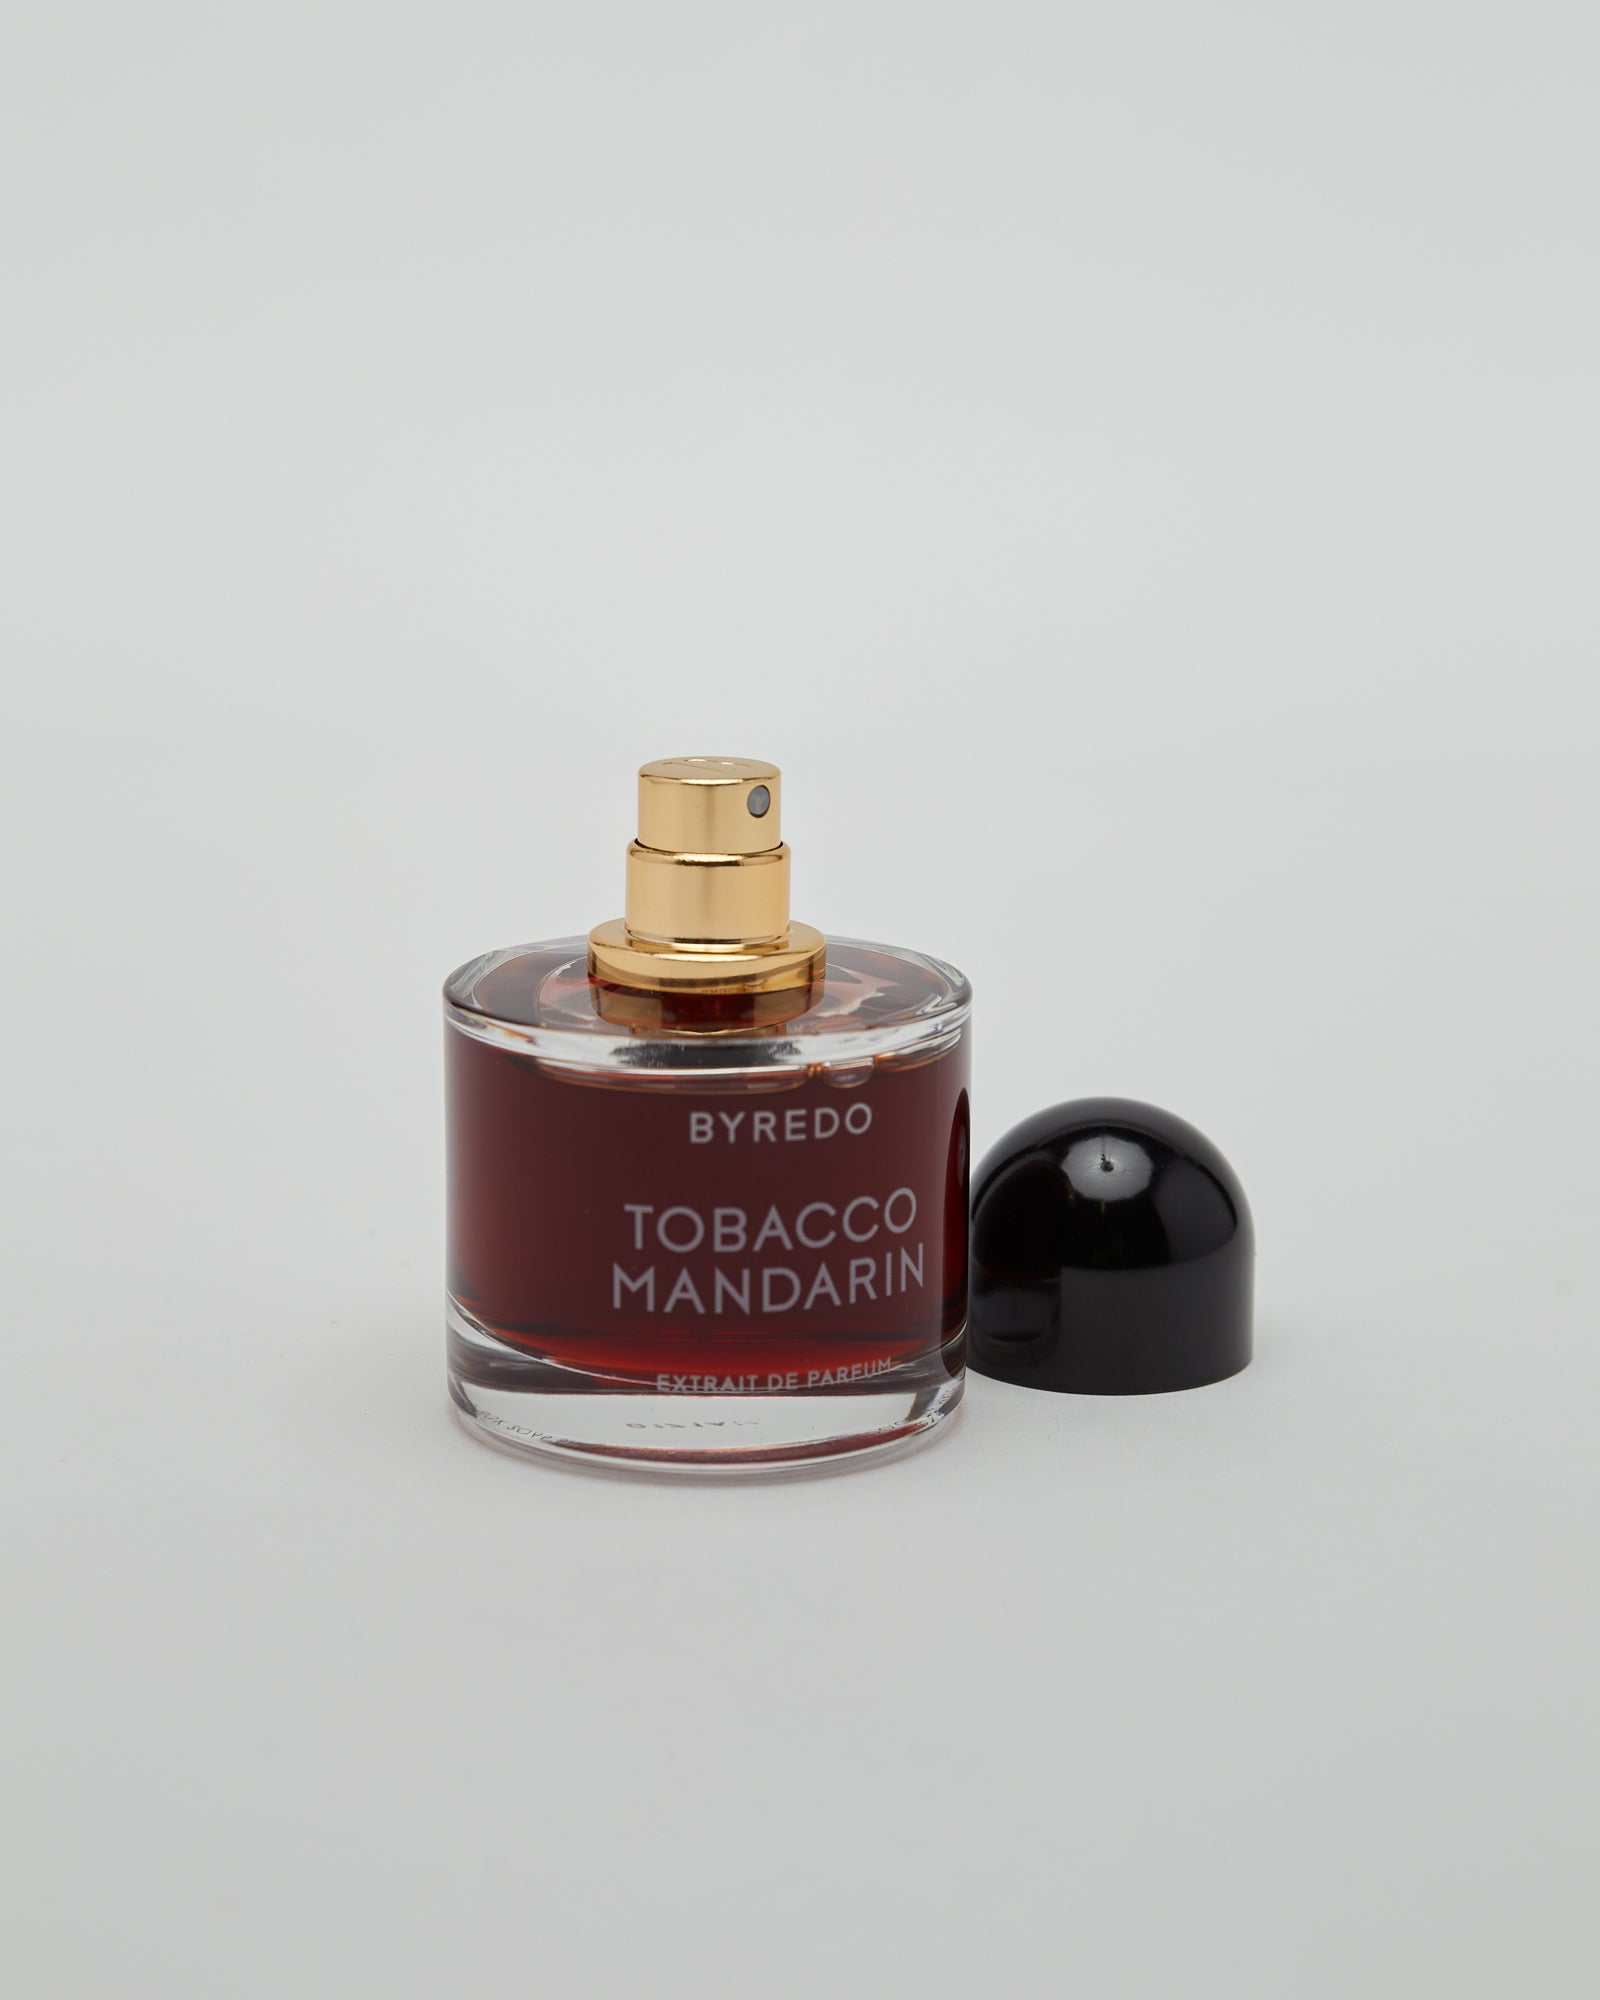 Night Veils Extrait De Parfum, Tobacco Mandarin 50ml